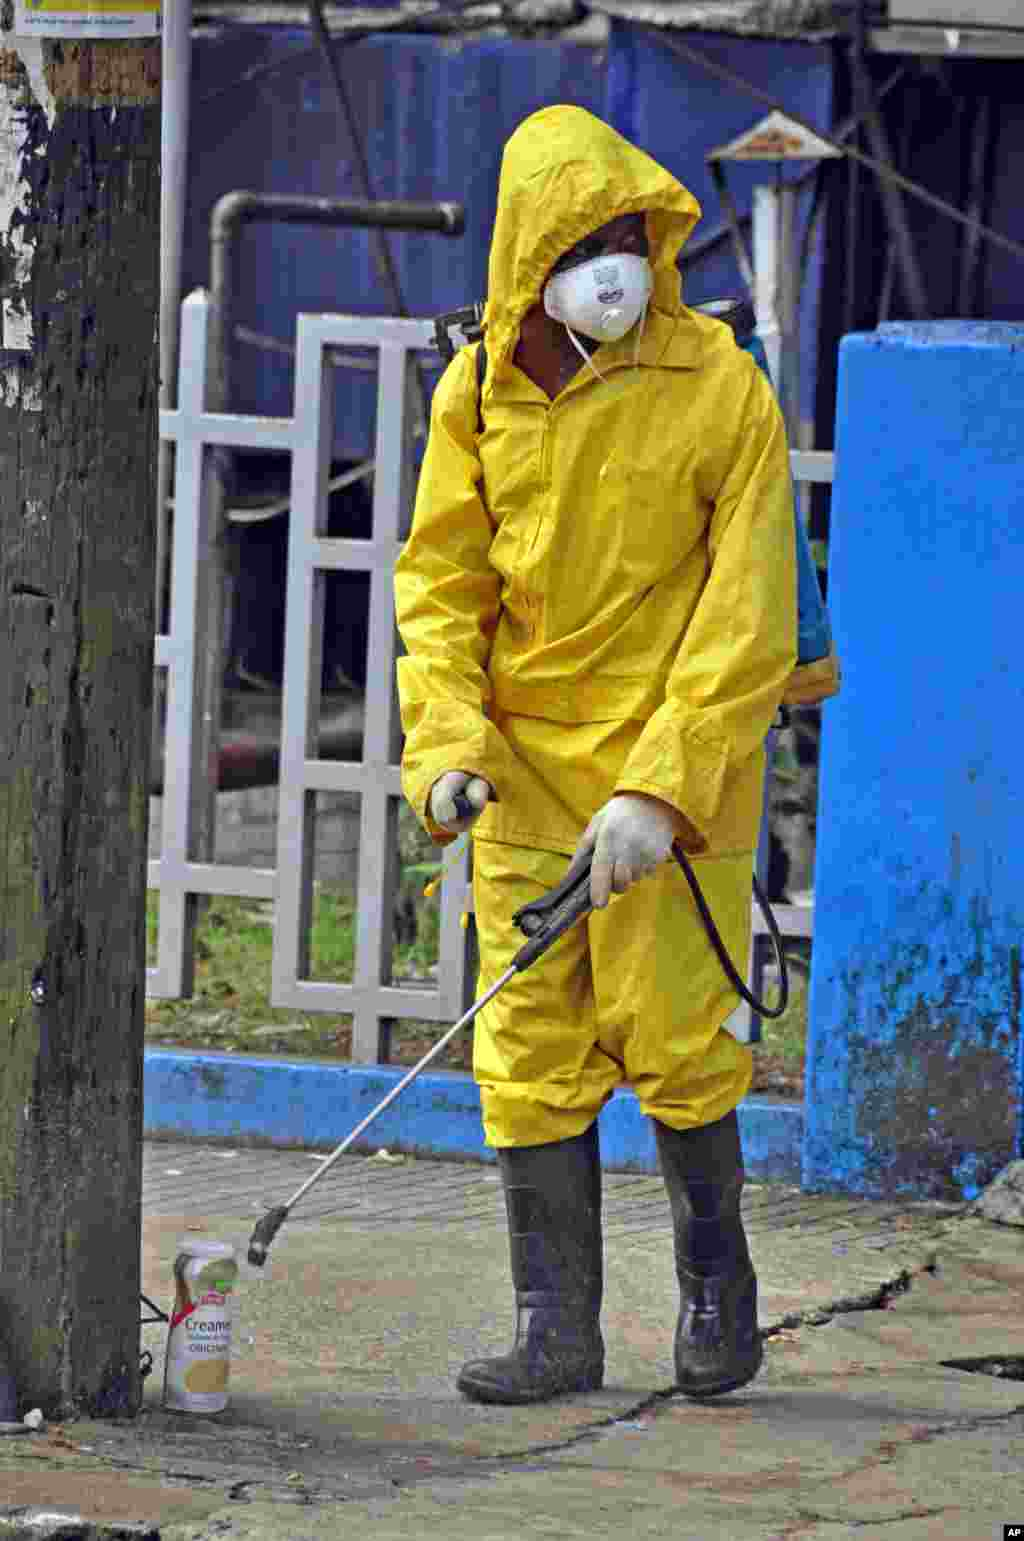 An employee of the Monrovia City Corporation sprays disinfectant along the streets to prevent the spread of the deadly Ebola virus, Monrovia, Liberia, August 1, 2014.